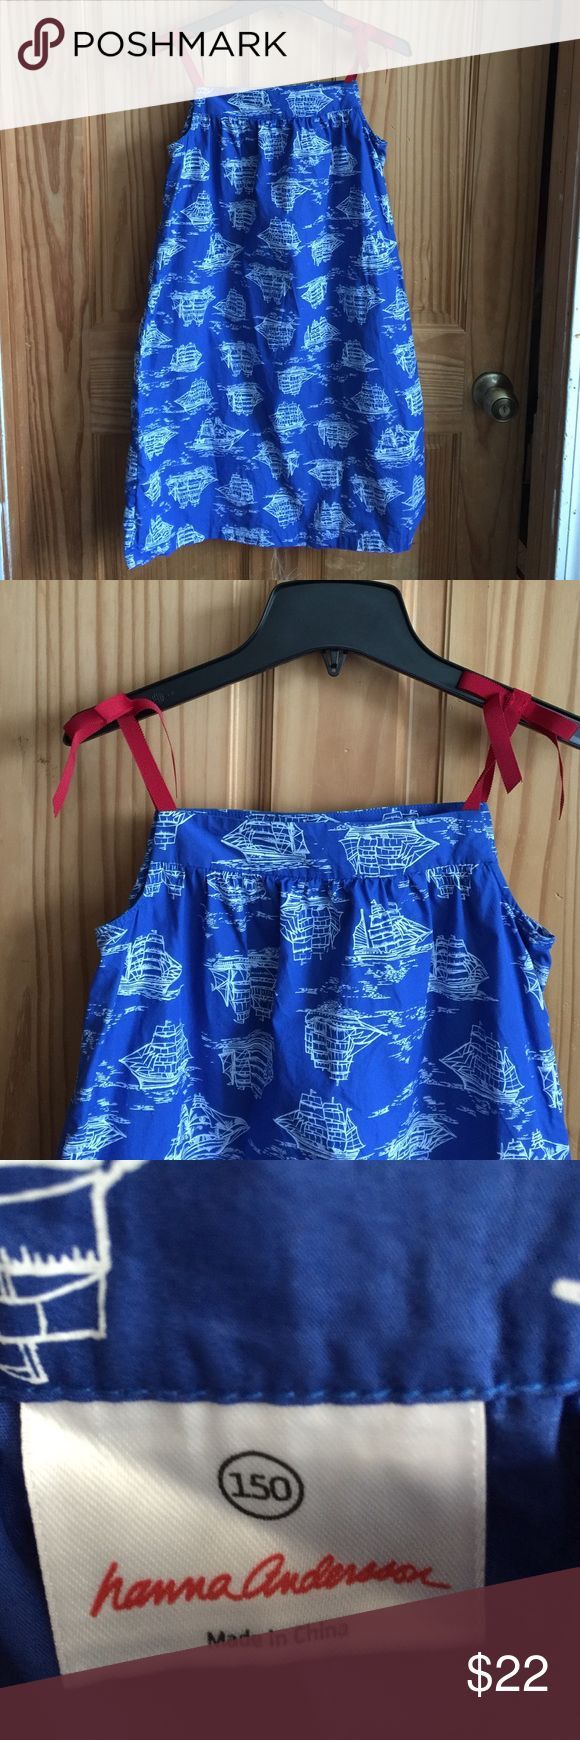 Girls Hanna Anderson 150 nautical dress  Girls Hanna Anderson 150 nautical dress  , in new condition. Took tags off but my daughter never wore it.  Beautiful dress with grosgrain ribbon  ties for straps in red to offset the beautiful blue and white nautical pattern.  Pair w red leggings or blue.. this would be charming. Dog friendly home. Smoke free. Hanna Andersson Dresses Casual